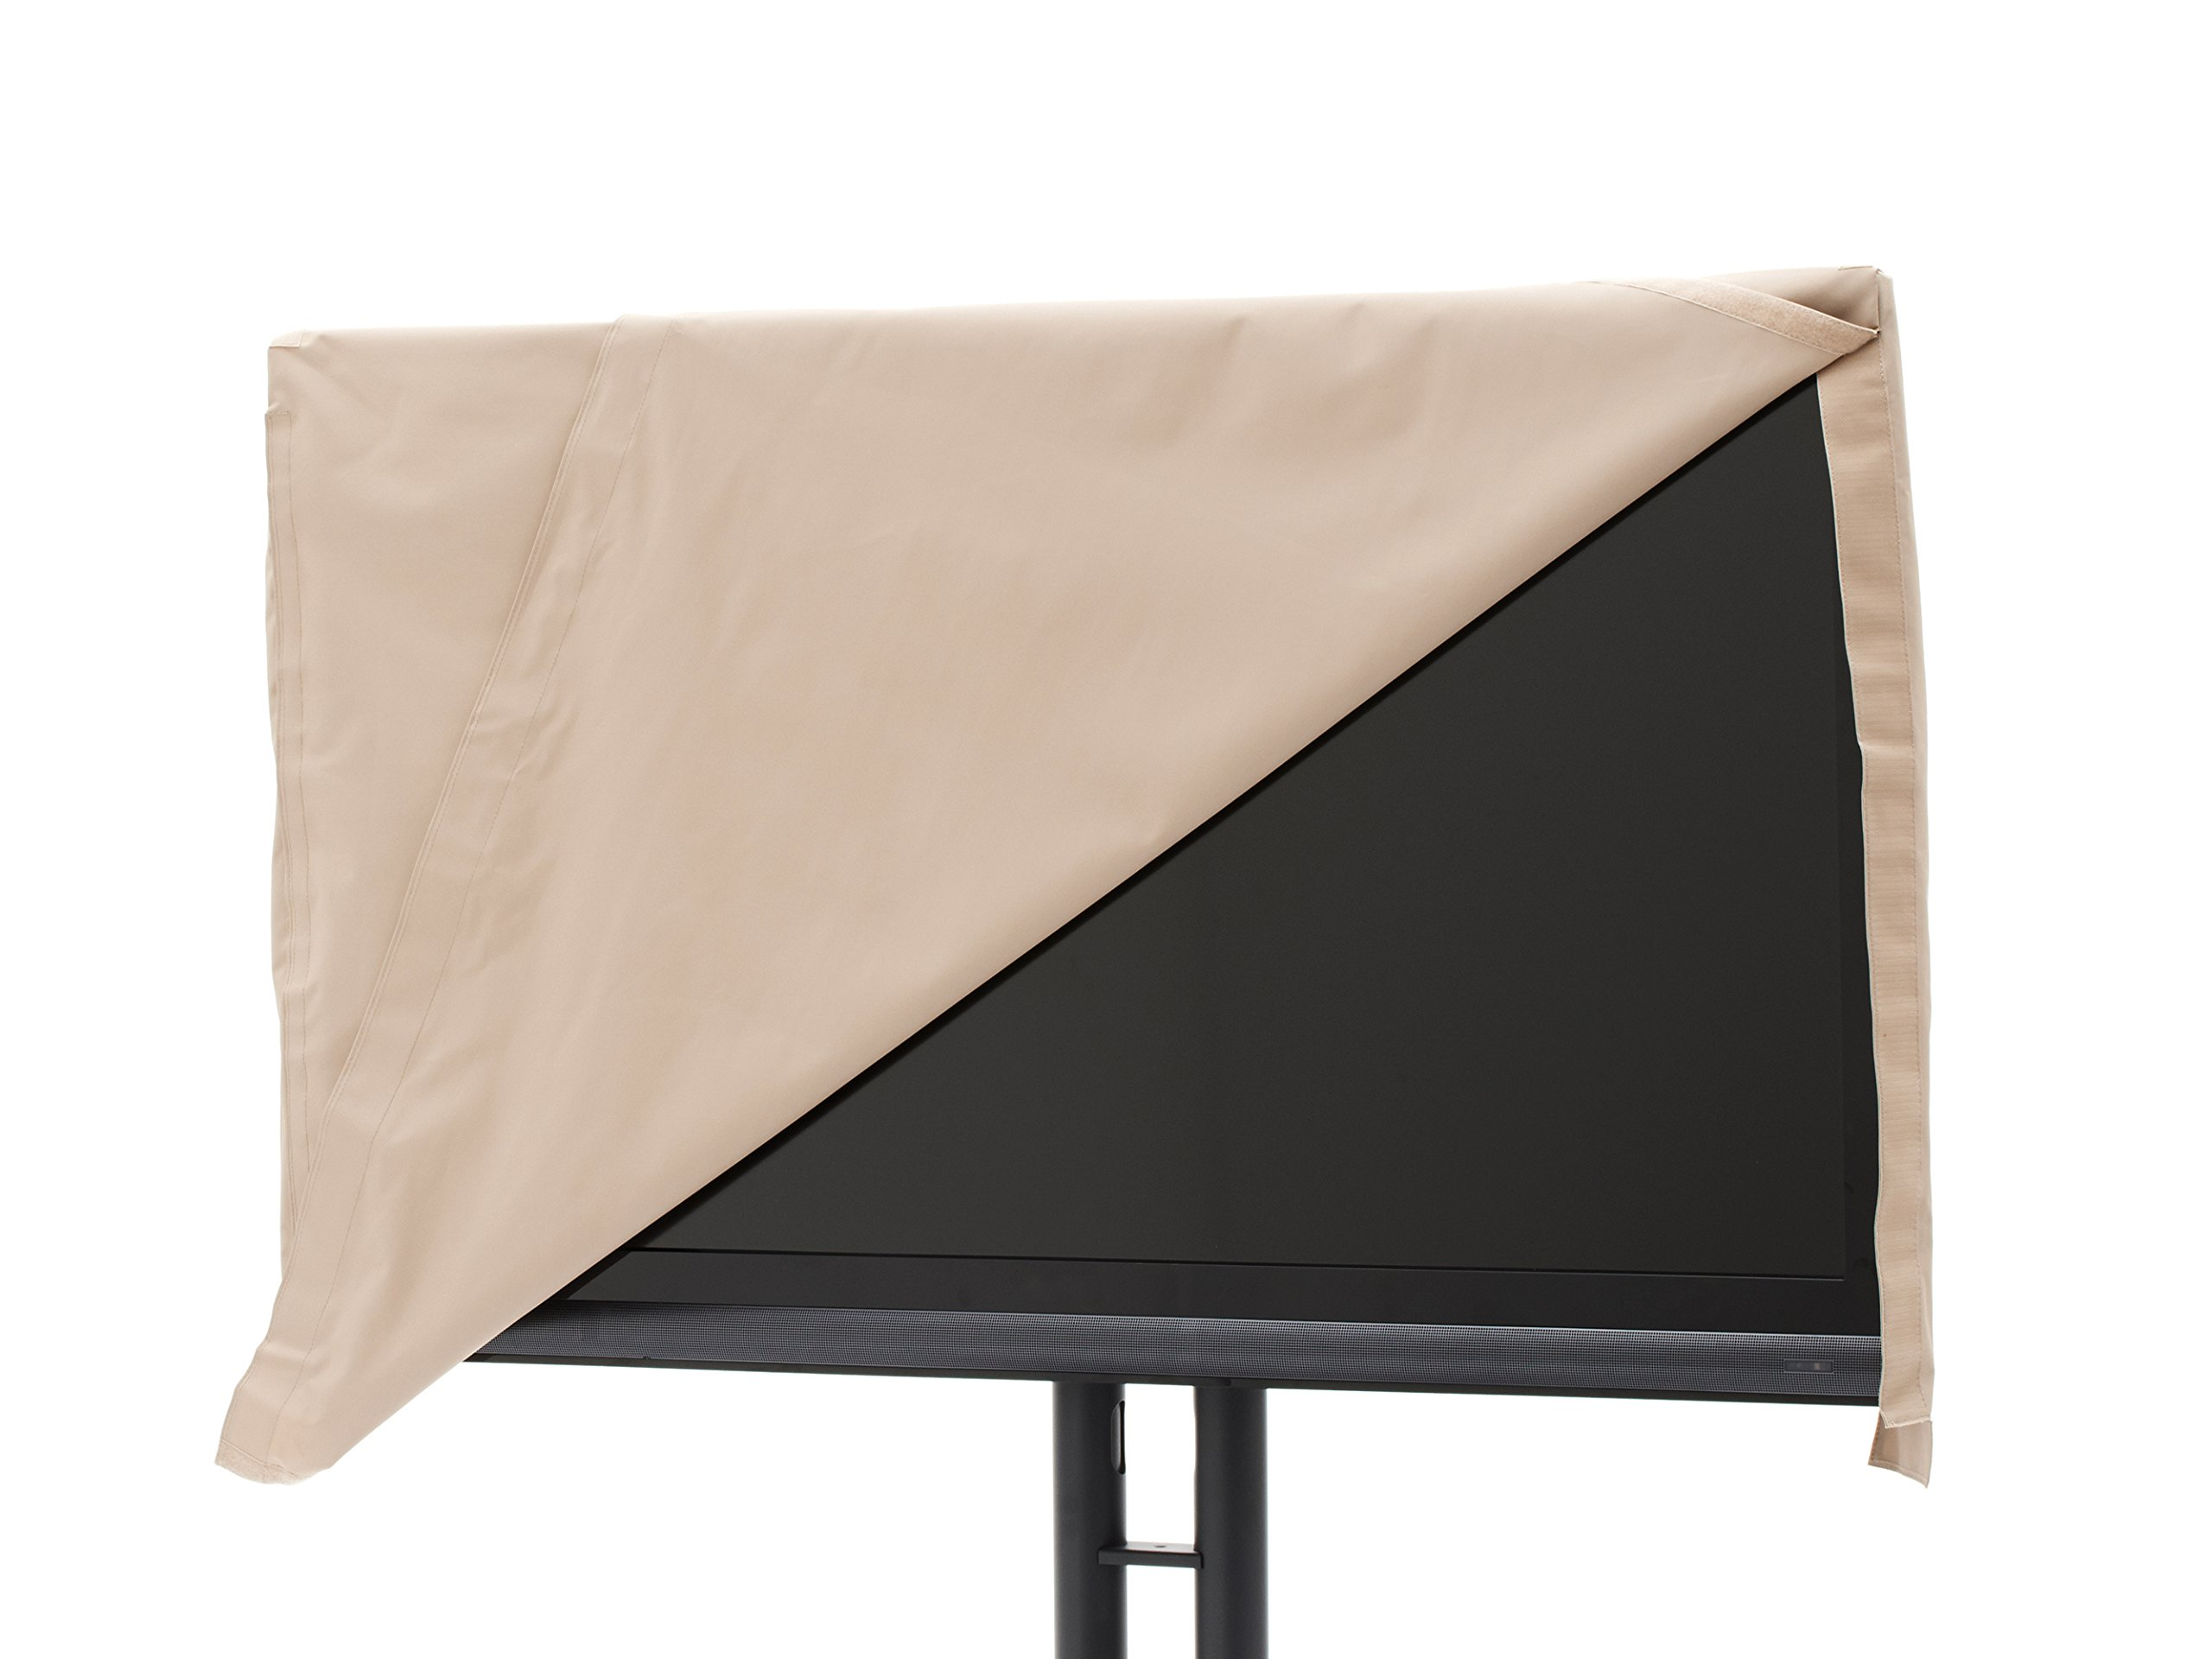 Covermates - Outdoor TV Cover - Fits 36 to 41 Inch TV's - Ultima - 300 Denier Fade Resistant Polyester - Full Coverage - Front Flip Top for Quick Viewing - 7 Year Warranty - Water Resistant - Tan by Covermates